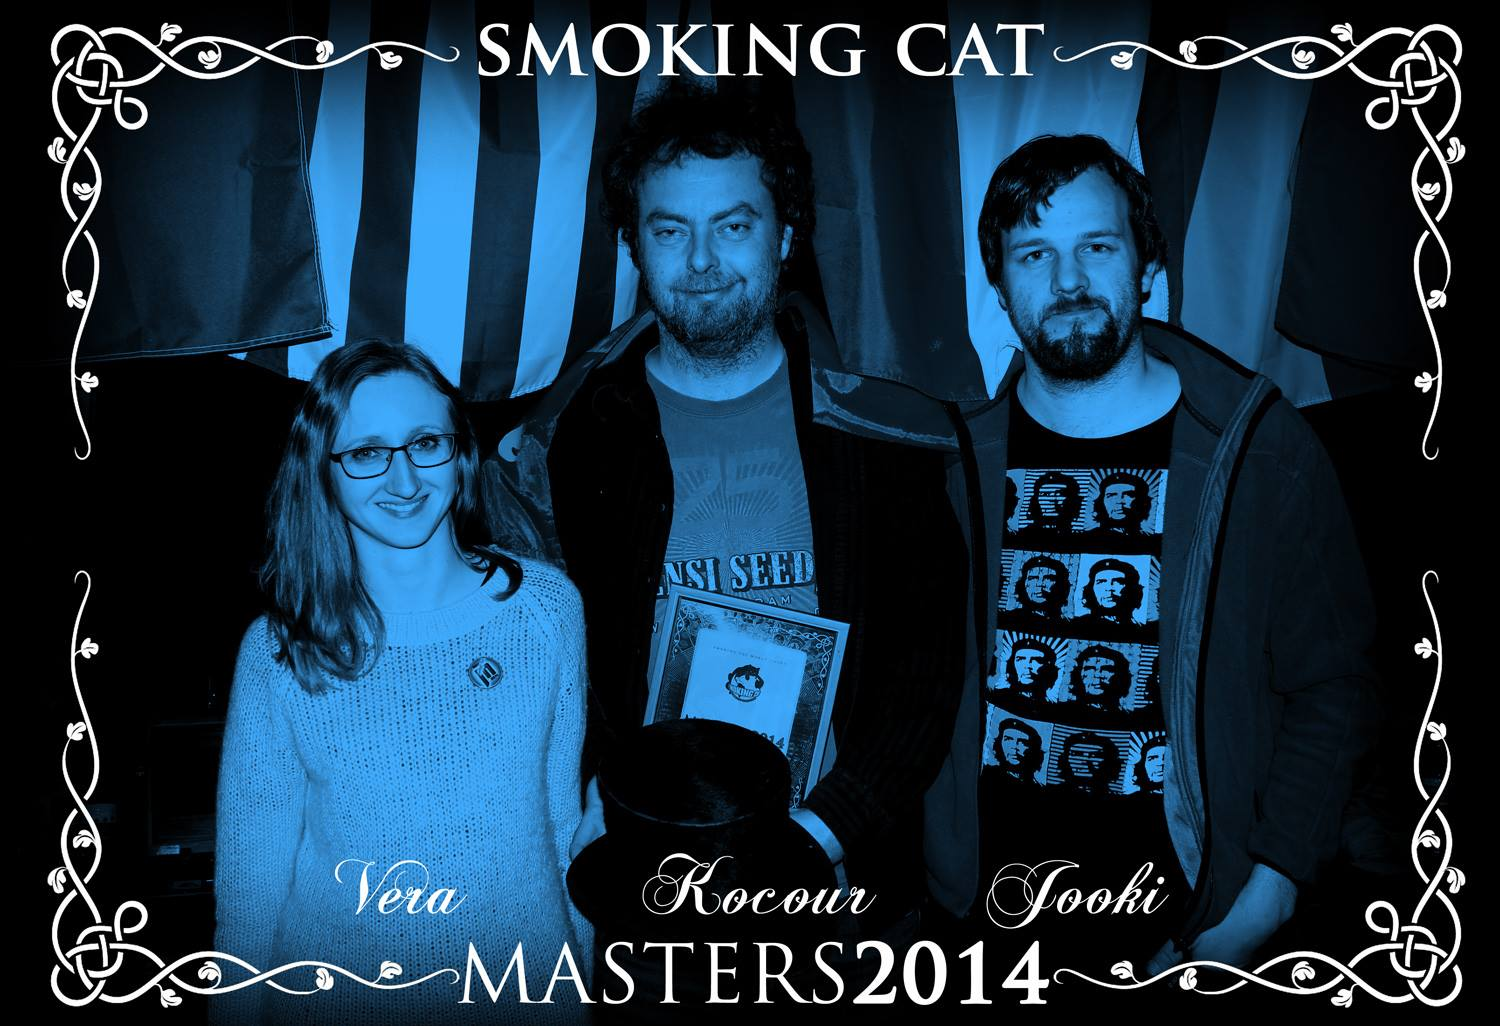 Winners of Smoking Cat Masters 2014